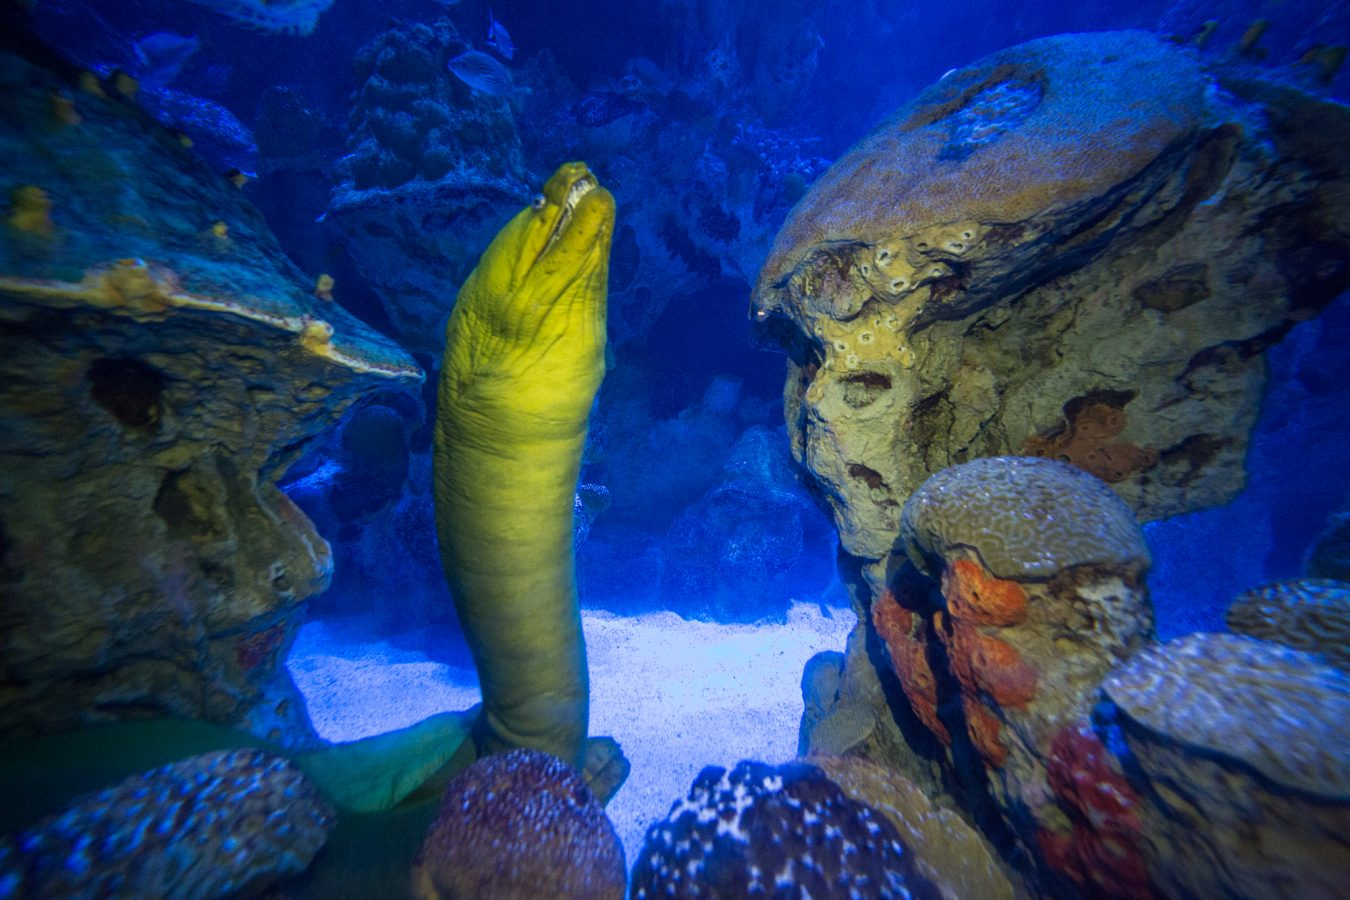 A green moray in the GOT under a blue light simulating moonlight.